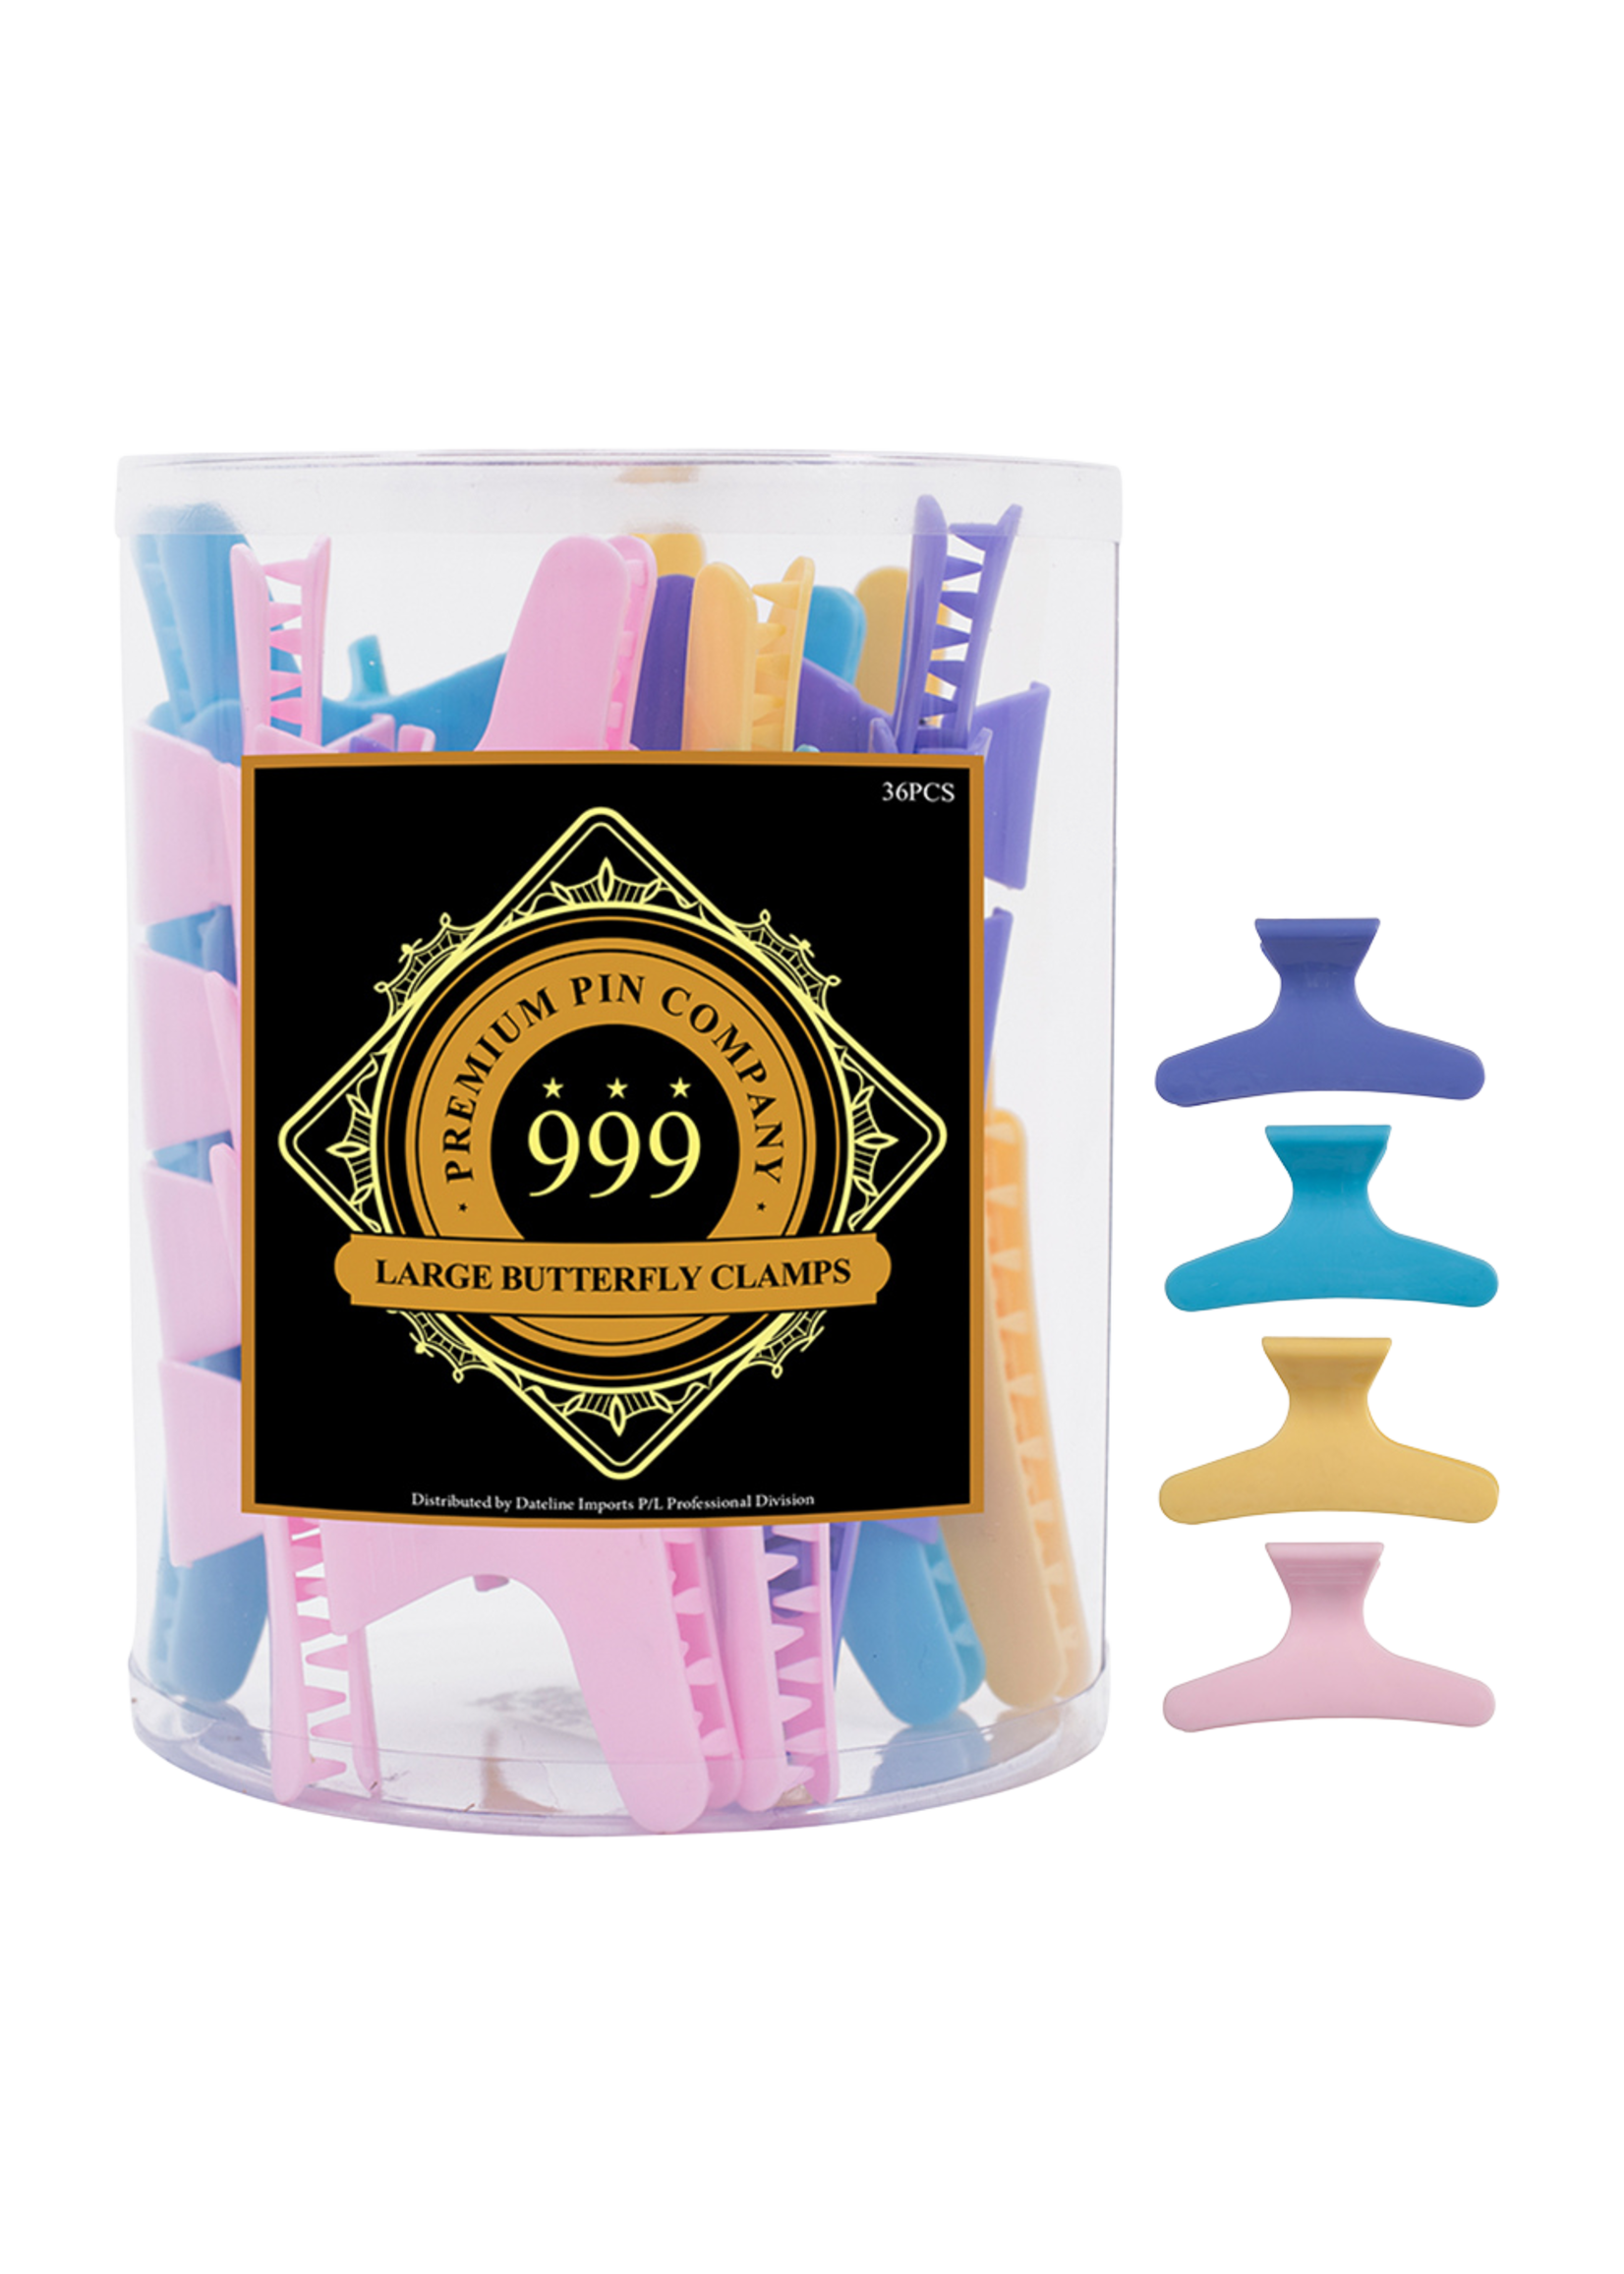 999 Premium Pin Company 999 Butterfly Clamps Large Pastel Tub 36pcs